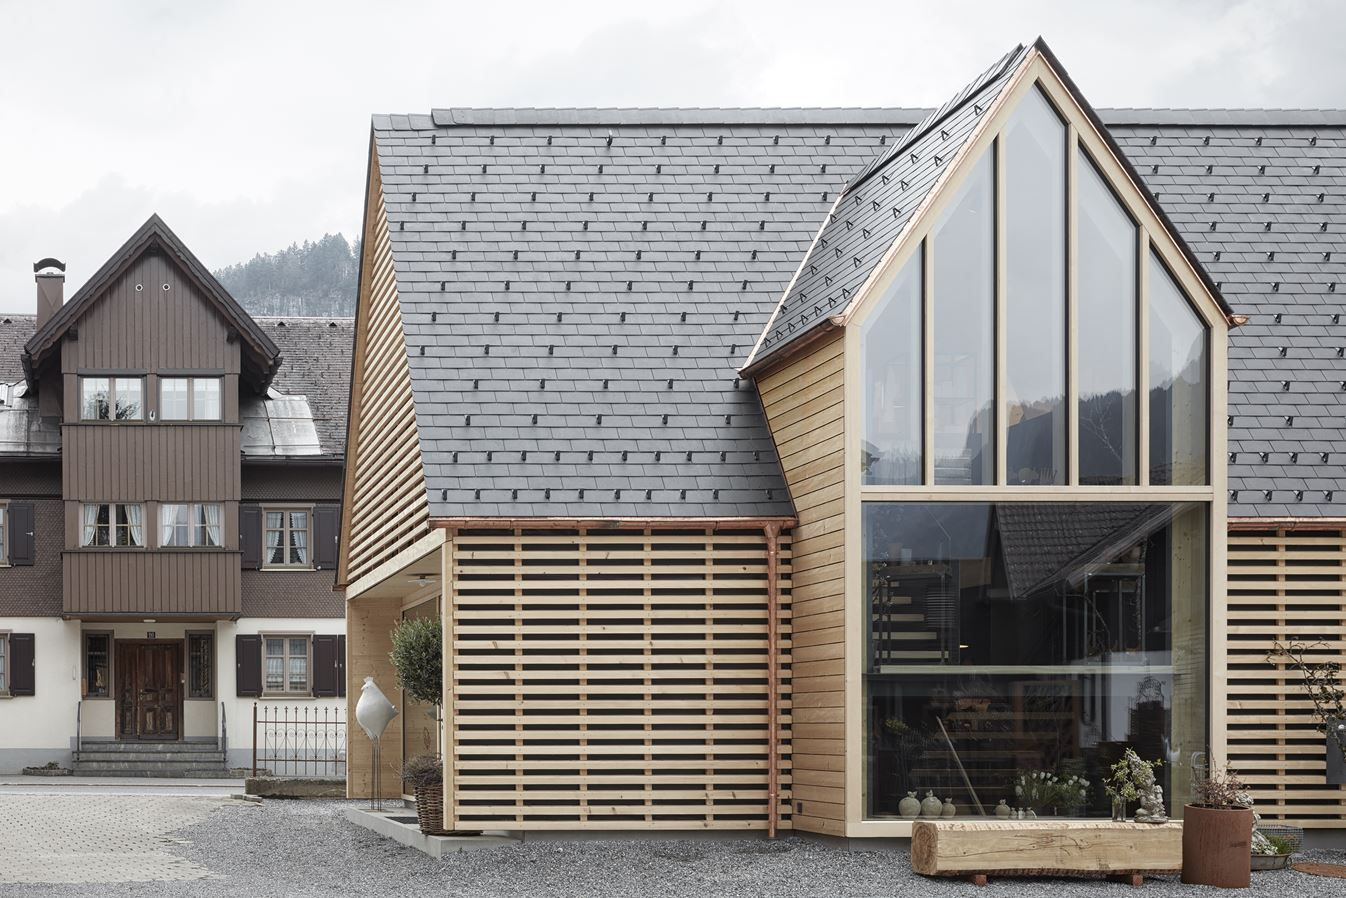 Extension Building For Gardening Shop Strubobuob Picture Gallery Roof Architecture Fibreglass Roof Architecture